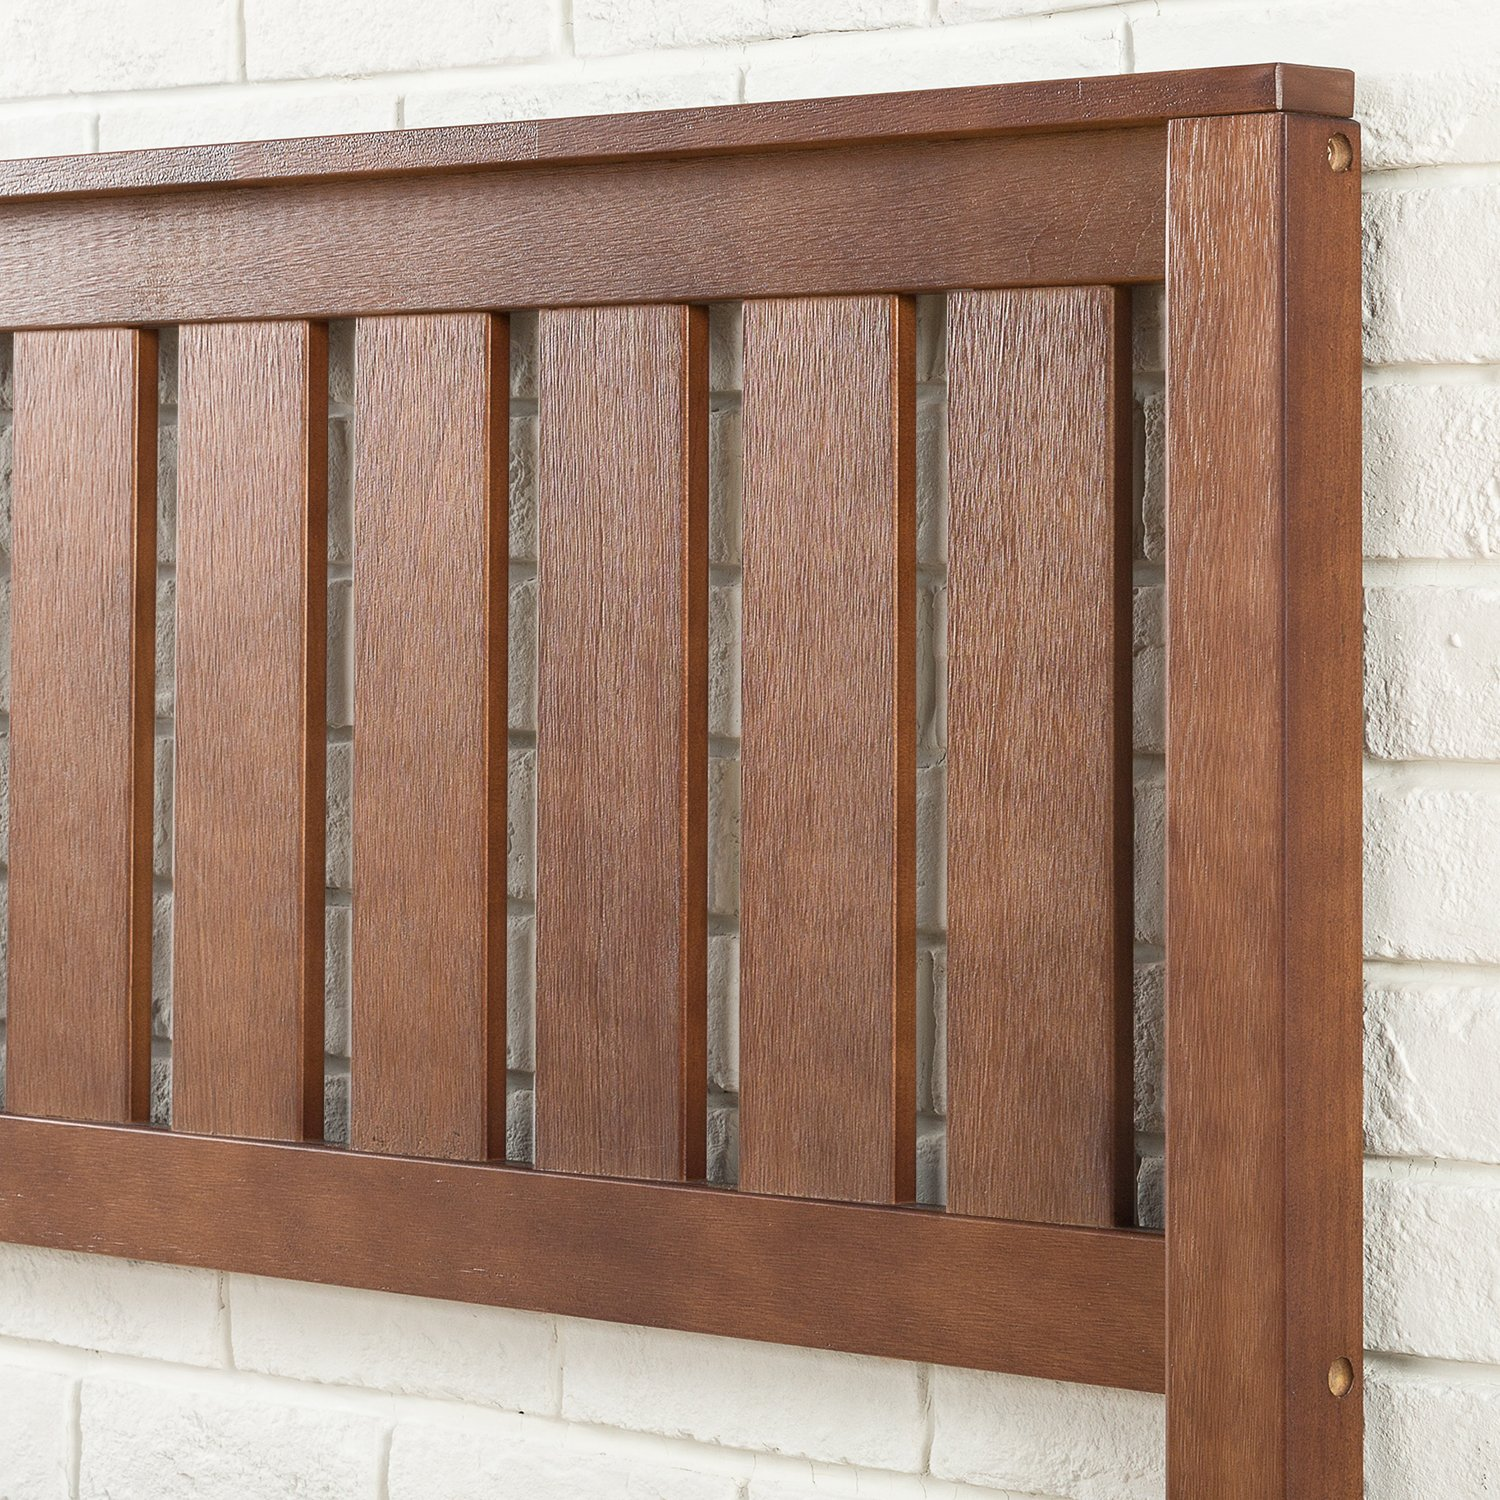 Zinus 12 Inch Deluxe Wood Platform Bed with Headboard / No Box Spring Needed / Wood Slat Support / Antique Espresso Finish, Full by Zinus (Image #5)